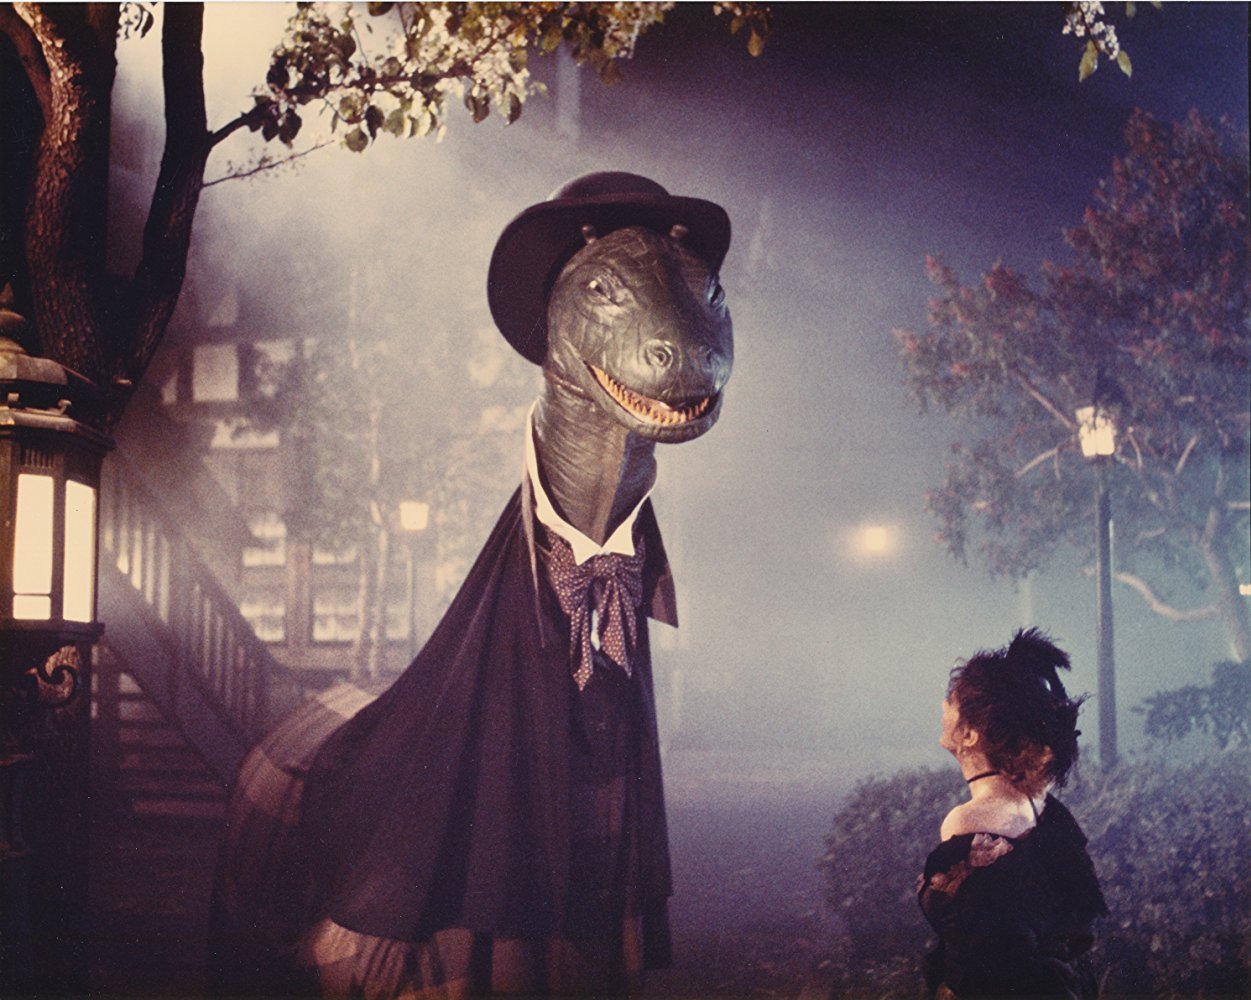 Was Jack the Ripper really the Loch Ness Monster? in Amazon Women on the Moon (1987)